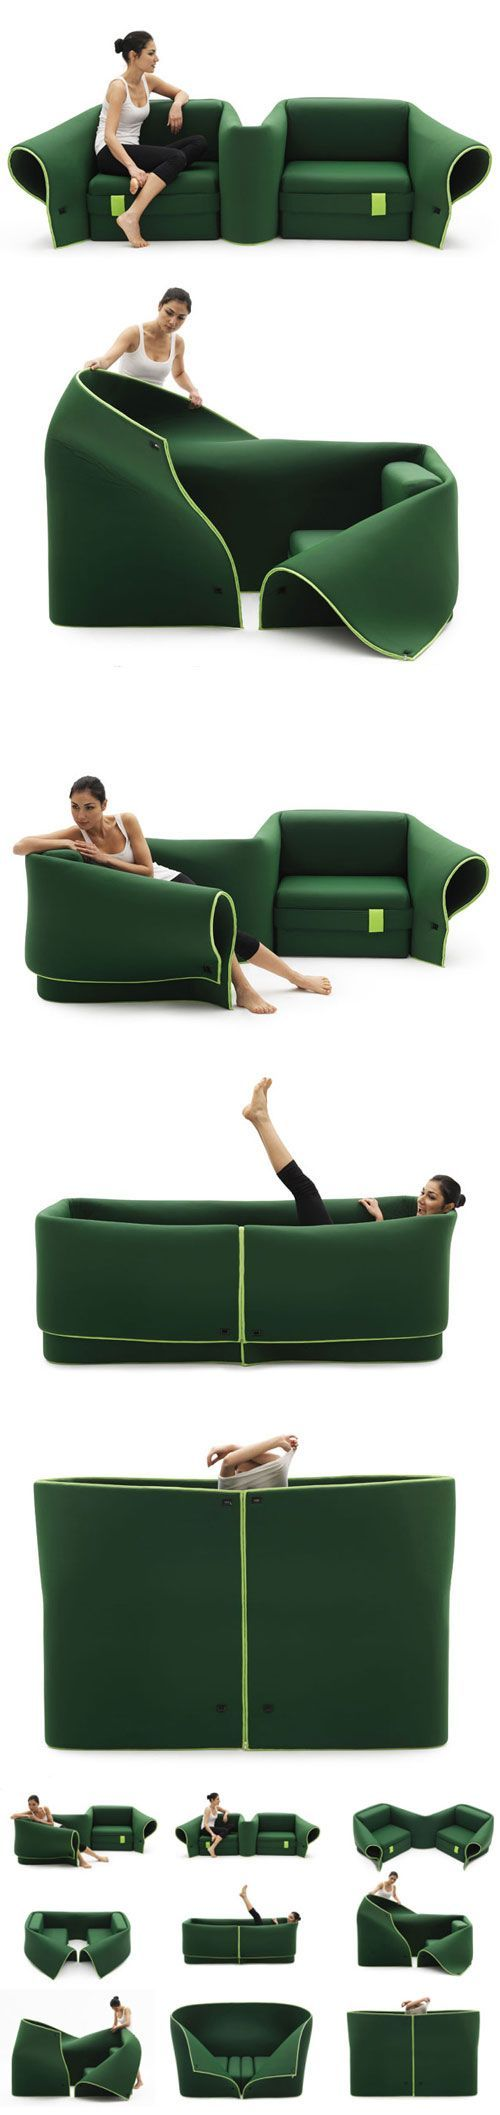 Convertible Sofa hmmmm yes please